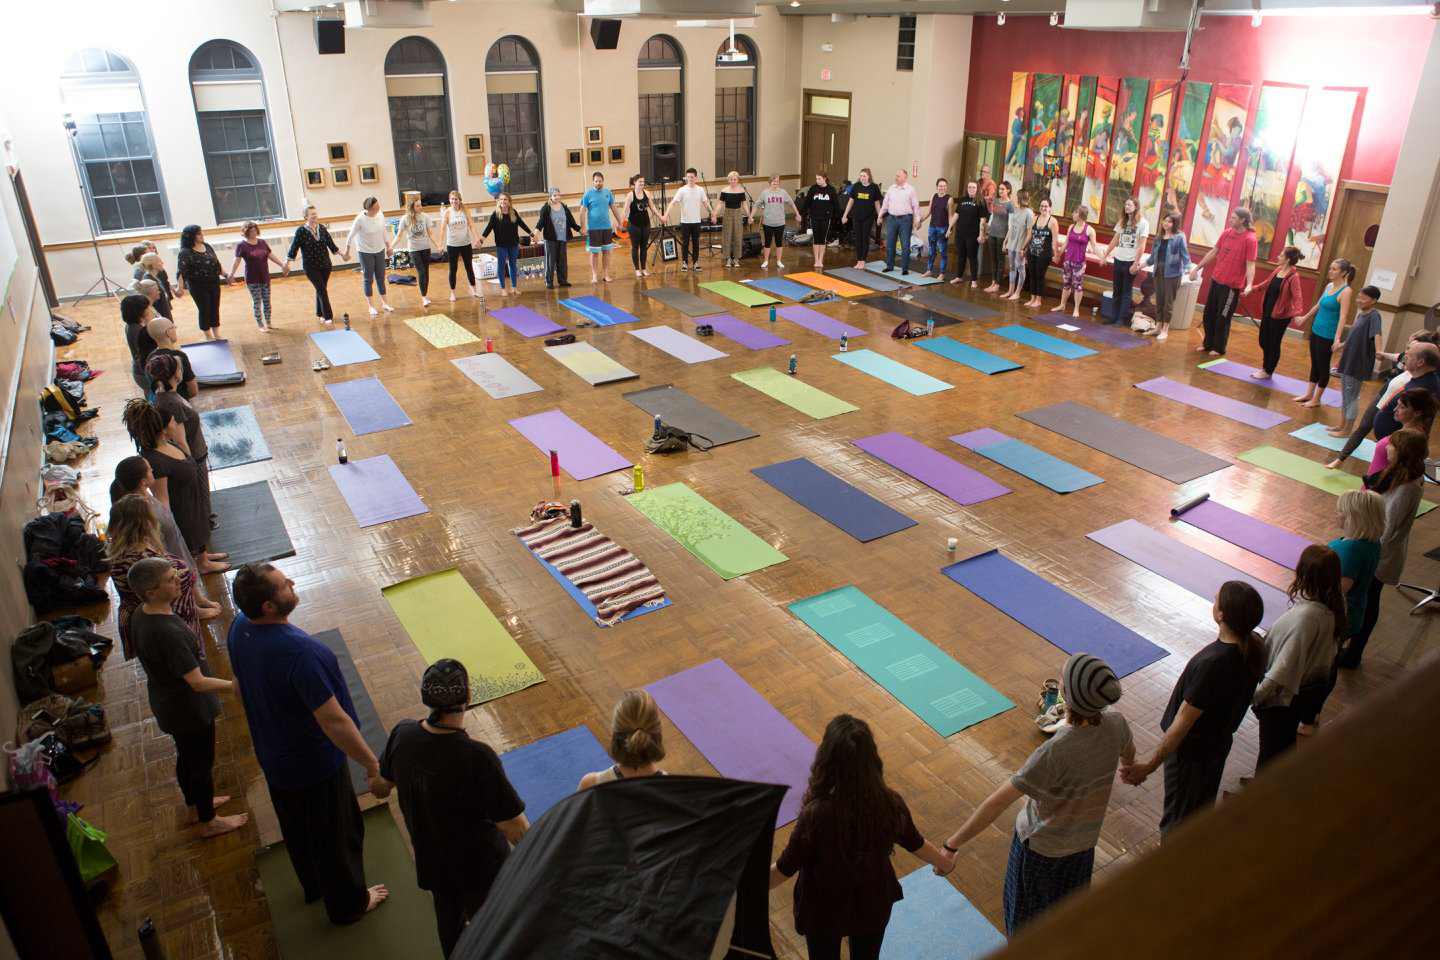 EmbodyGR offers a free yoga class Wednesdays at Fountain Street Church.